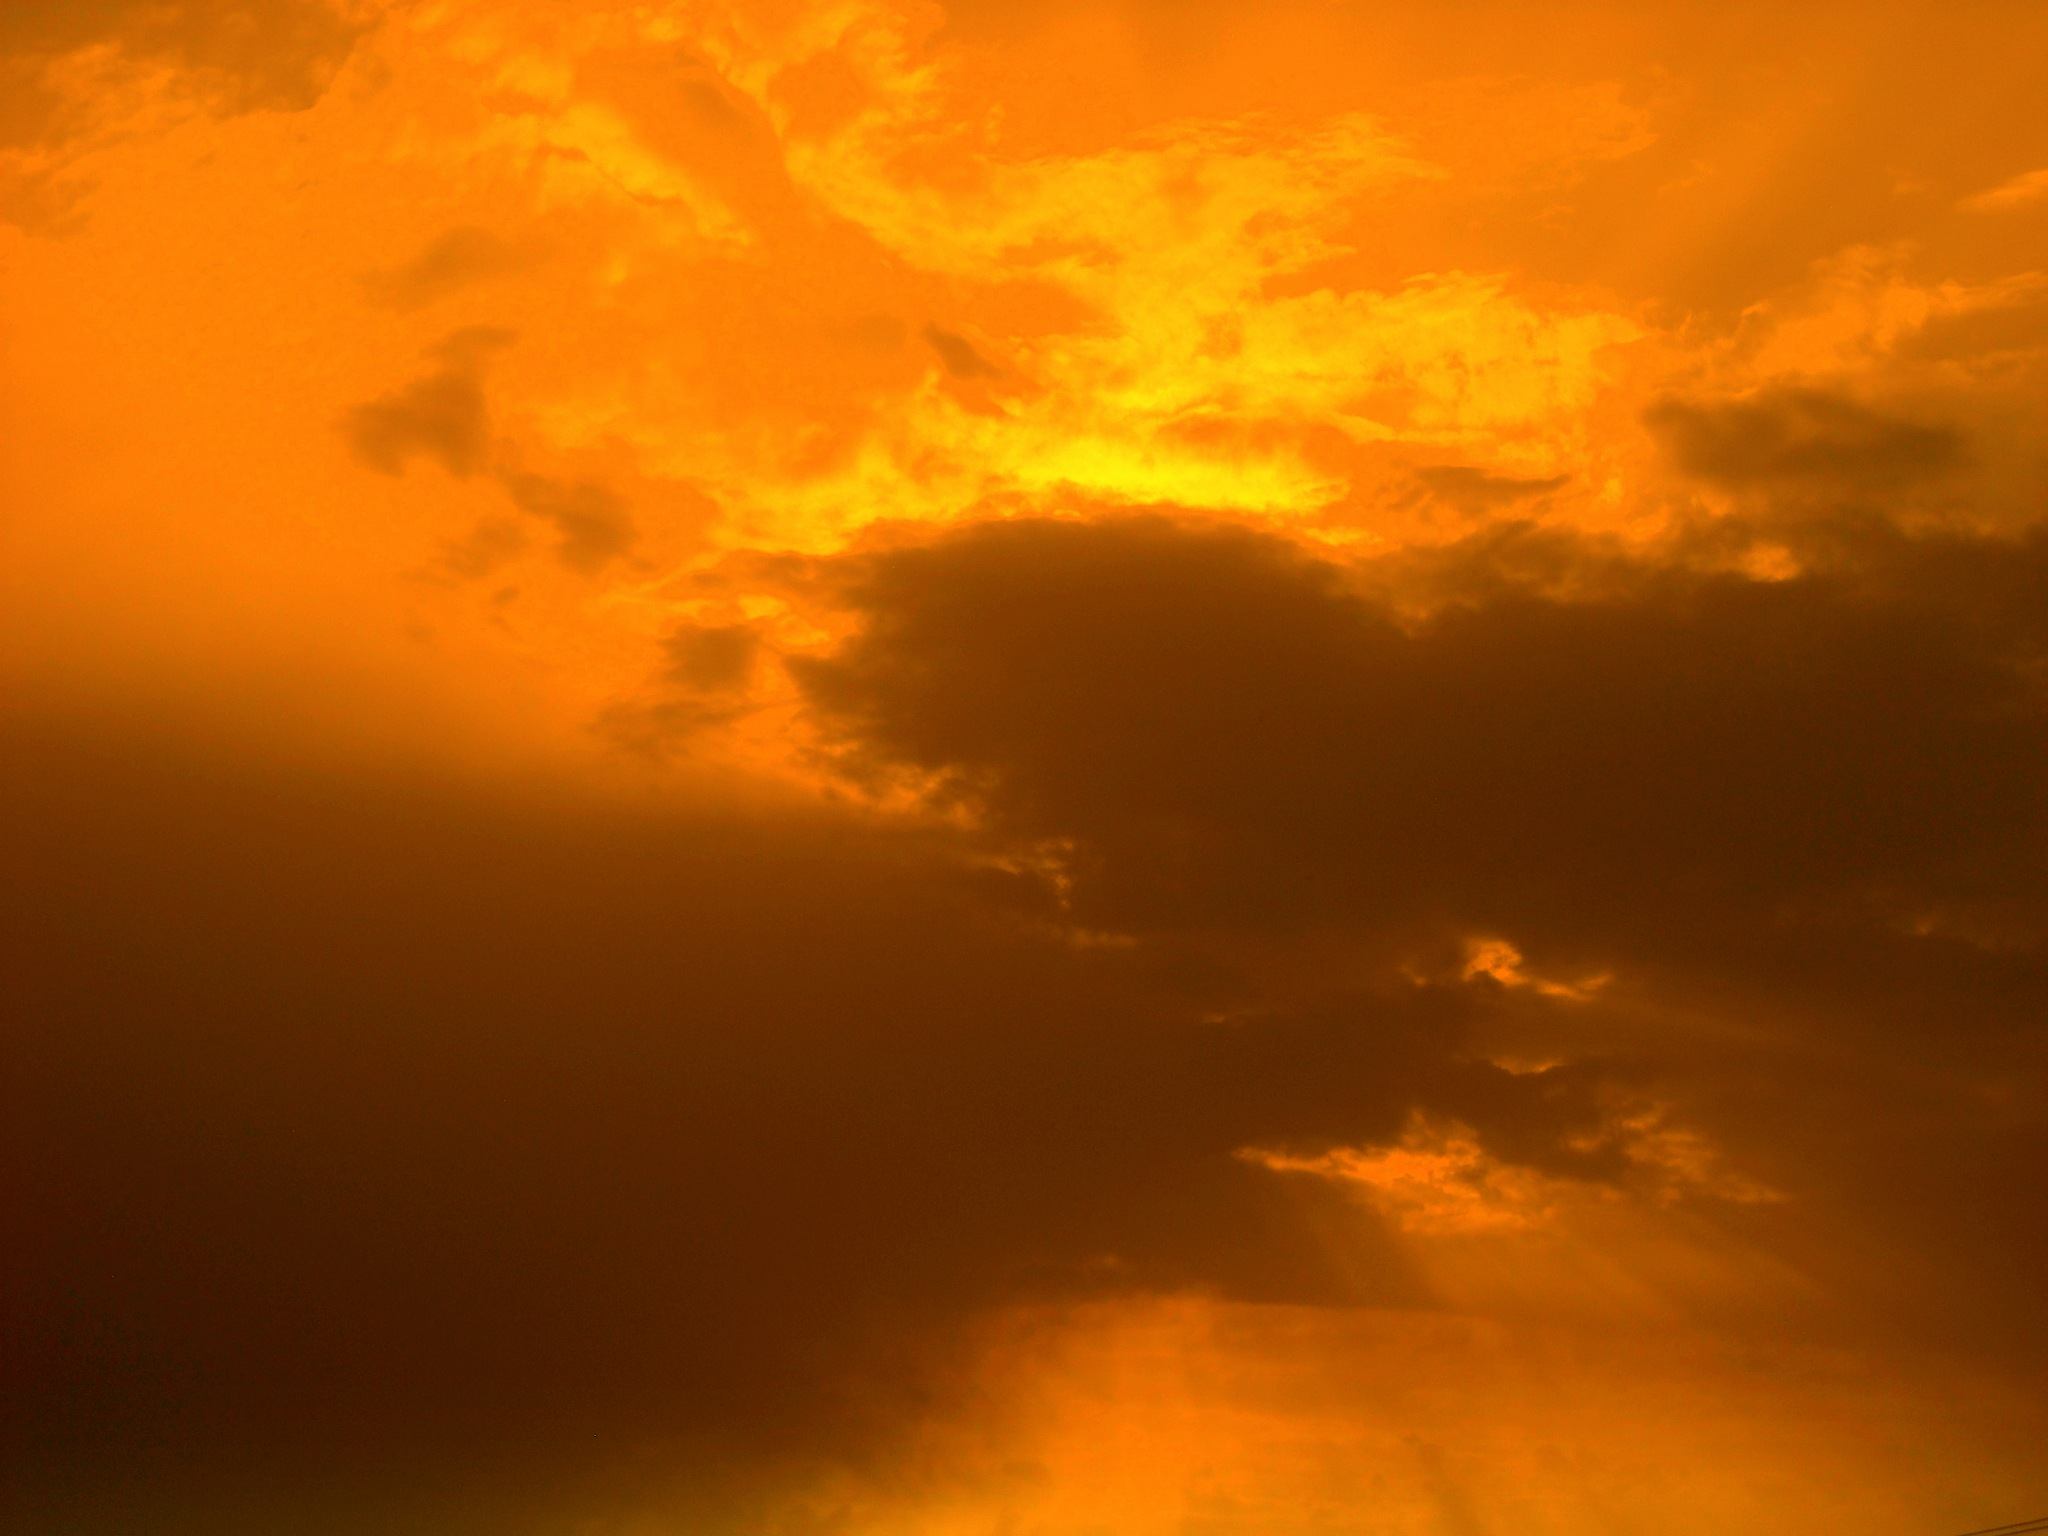 WHEN THE SUN HIDES BEHIND THE CLOUDS, FULL SCREEN by Akin Saner